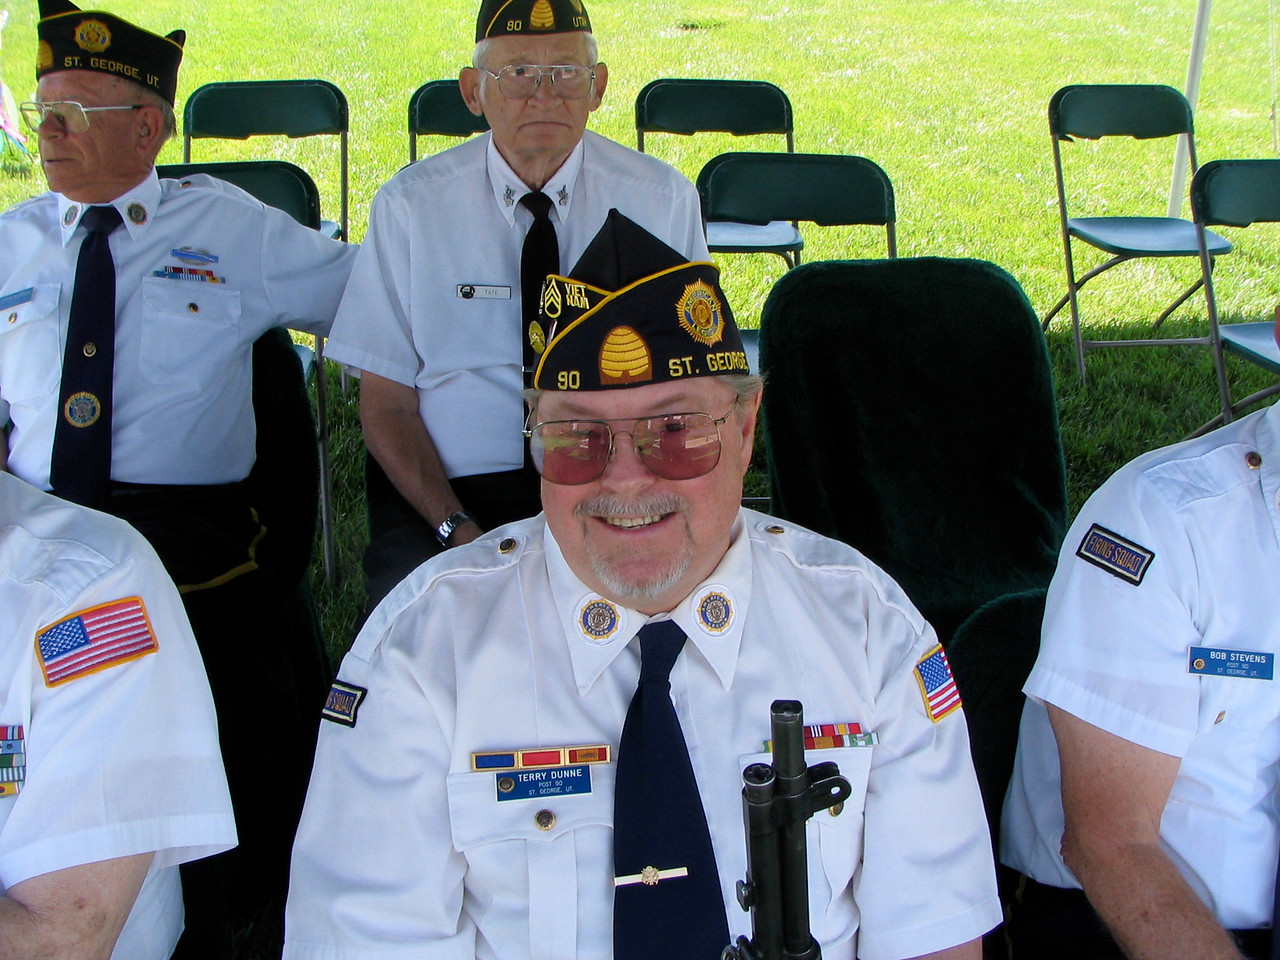 Back:  Lloyd Beardsley and Leland Tate, Honor Guard. Front Center:  Terry Dunne, Shooter.